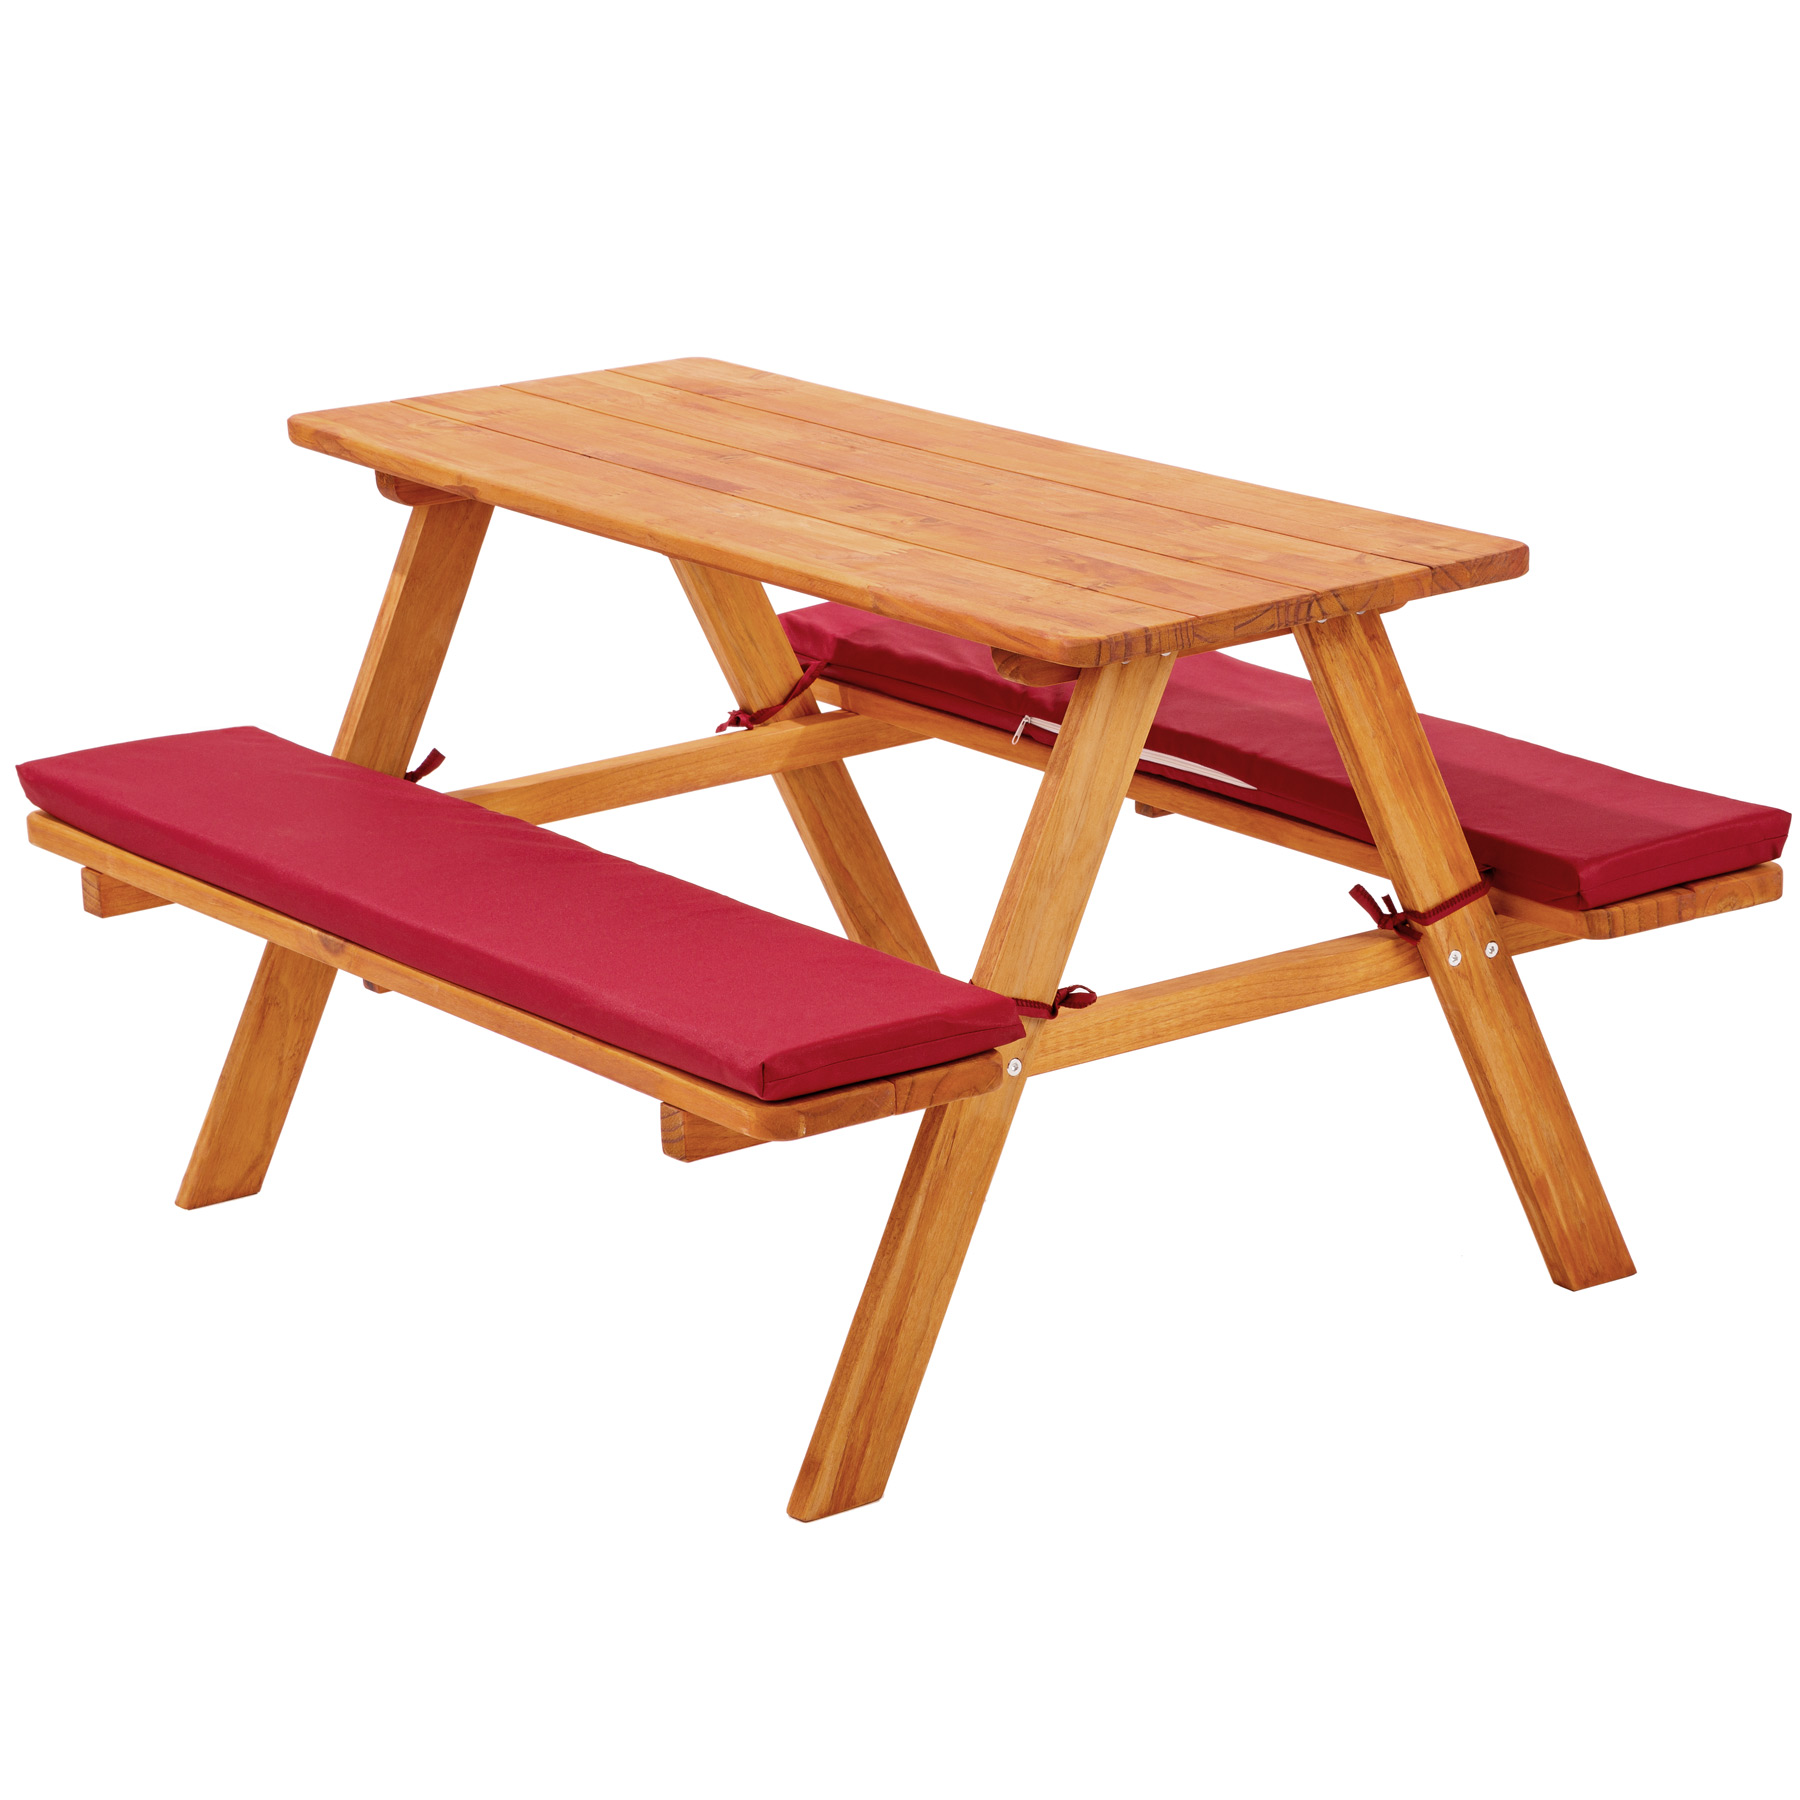 Kids Picnic Table Bench Set Childrens Wood Garden Furniture With Cushions Red Ebay